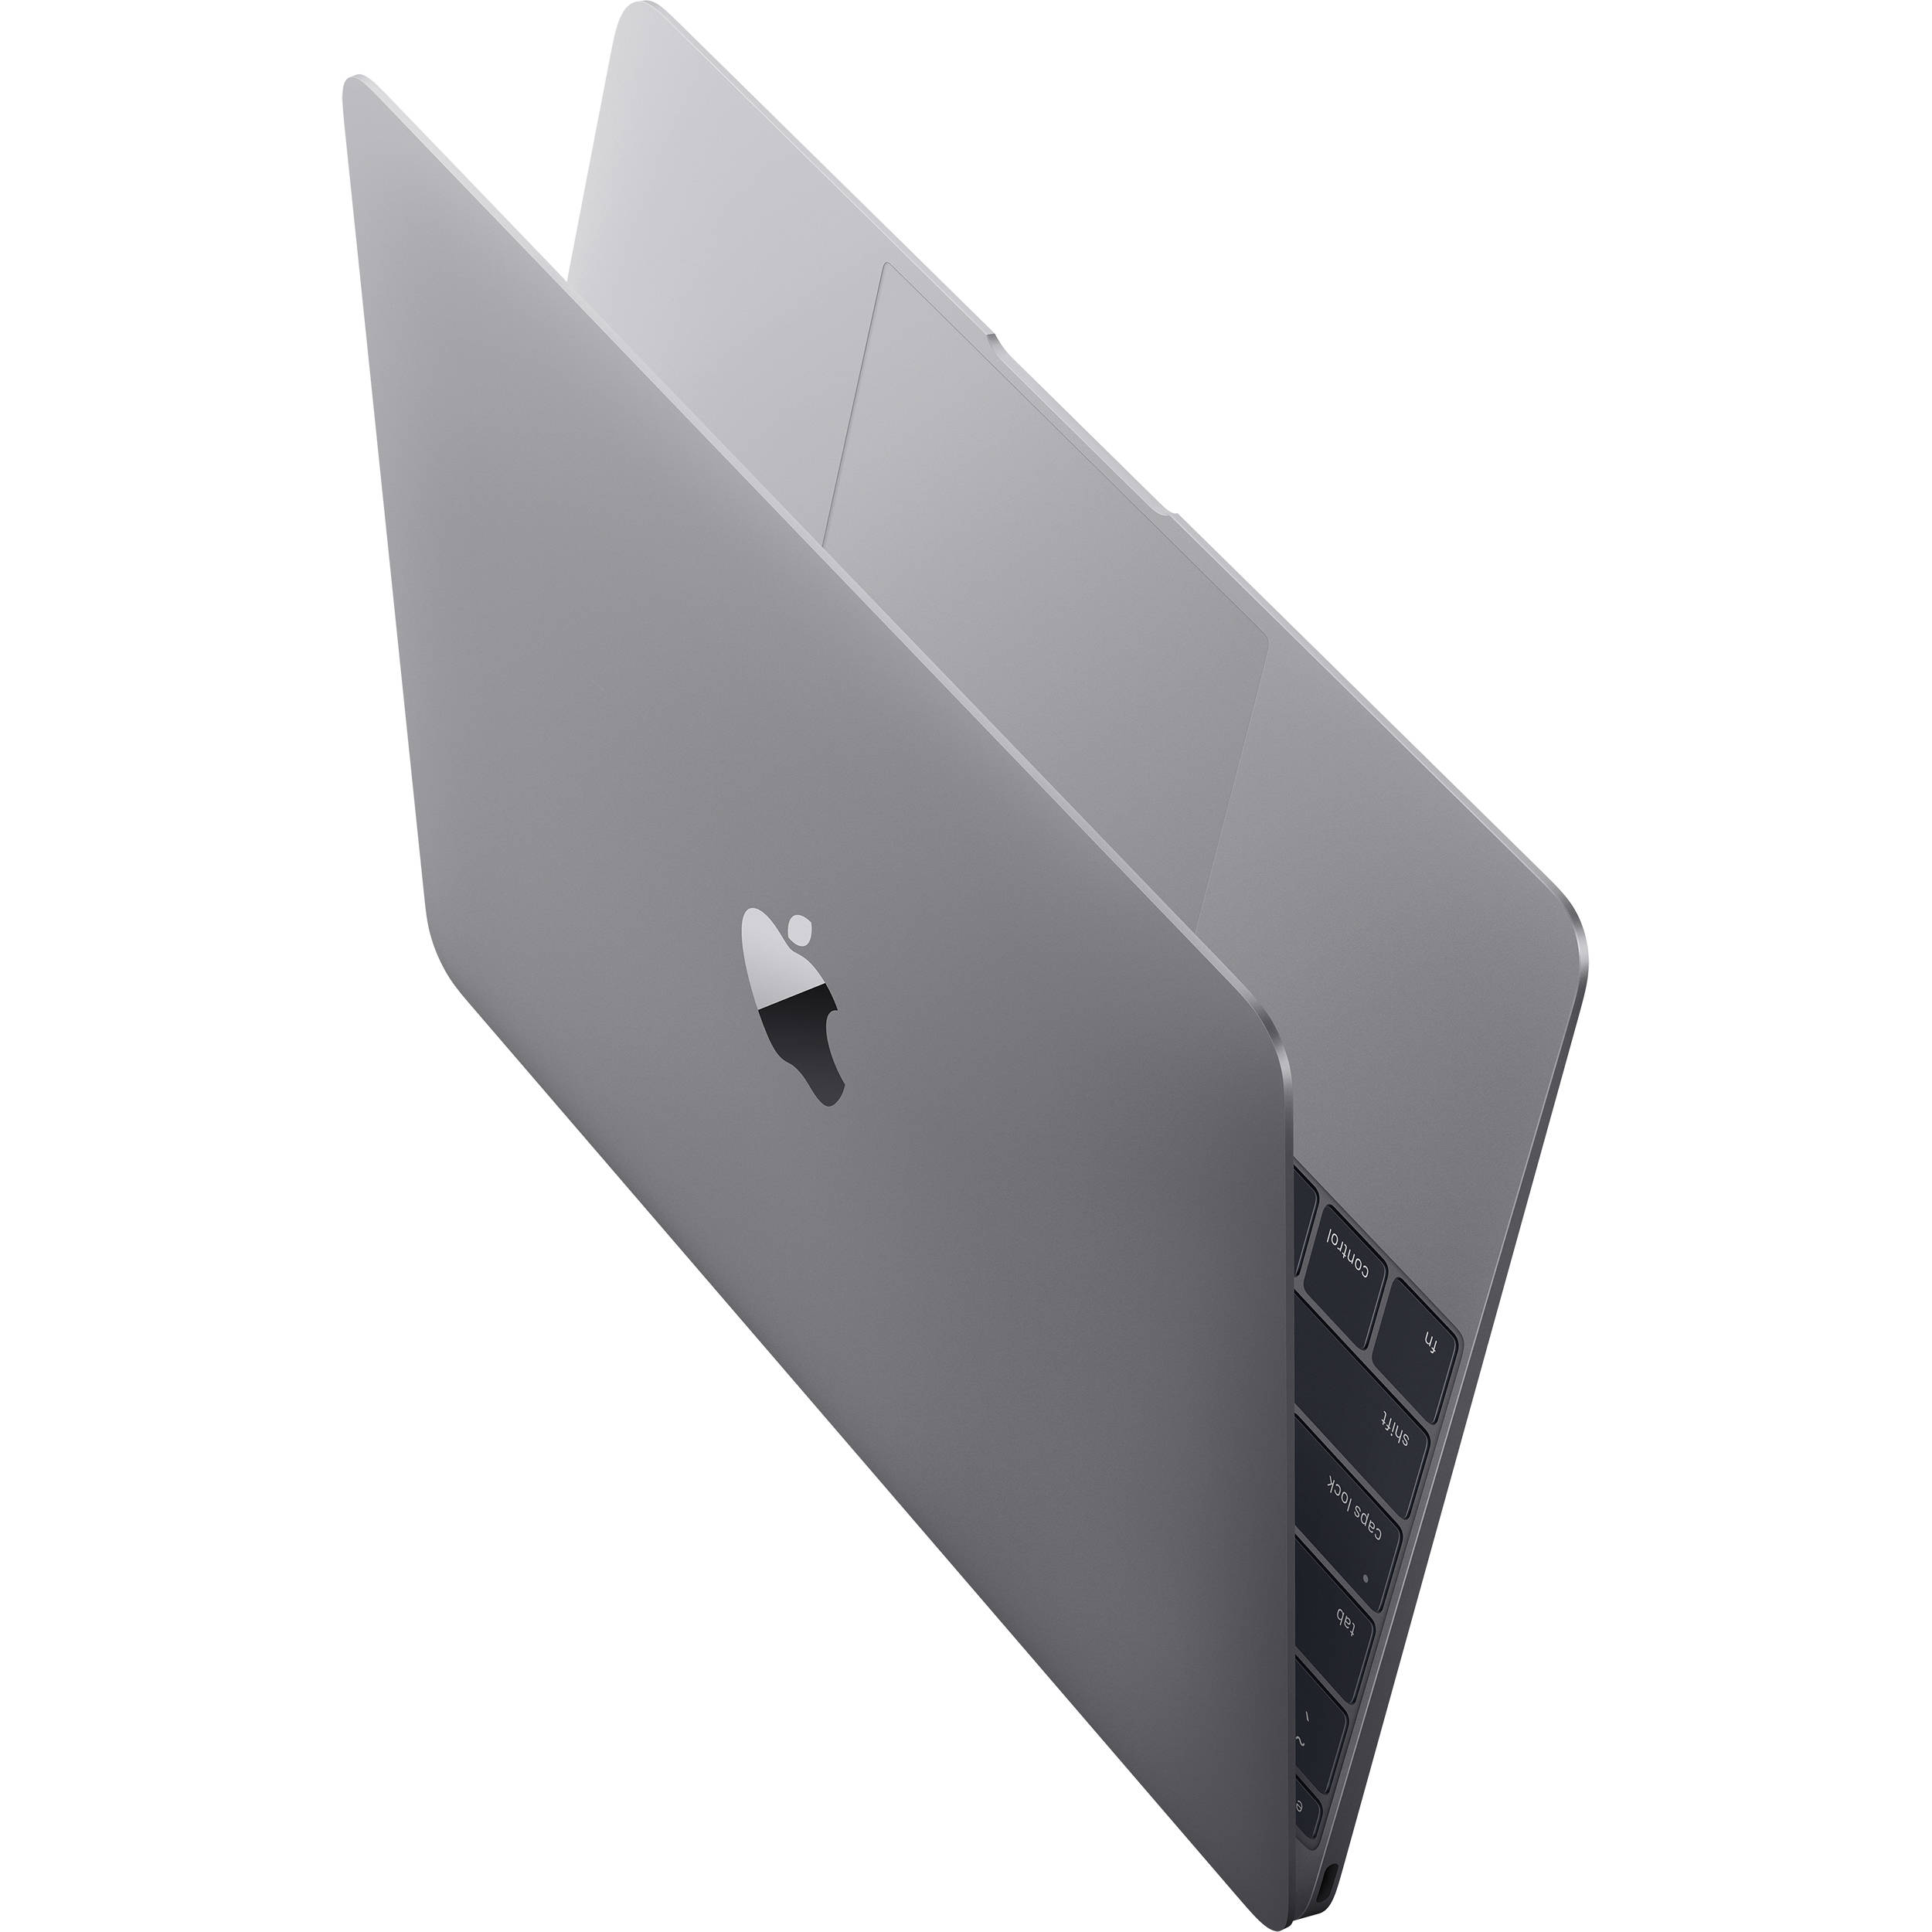 MacBook - We service all Apple Products